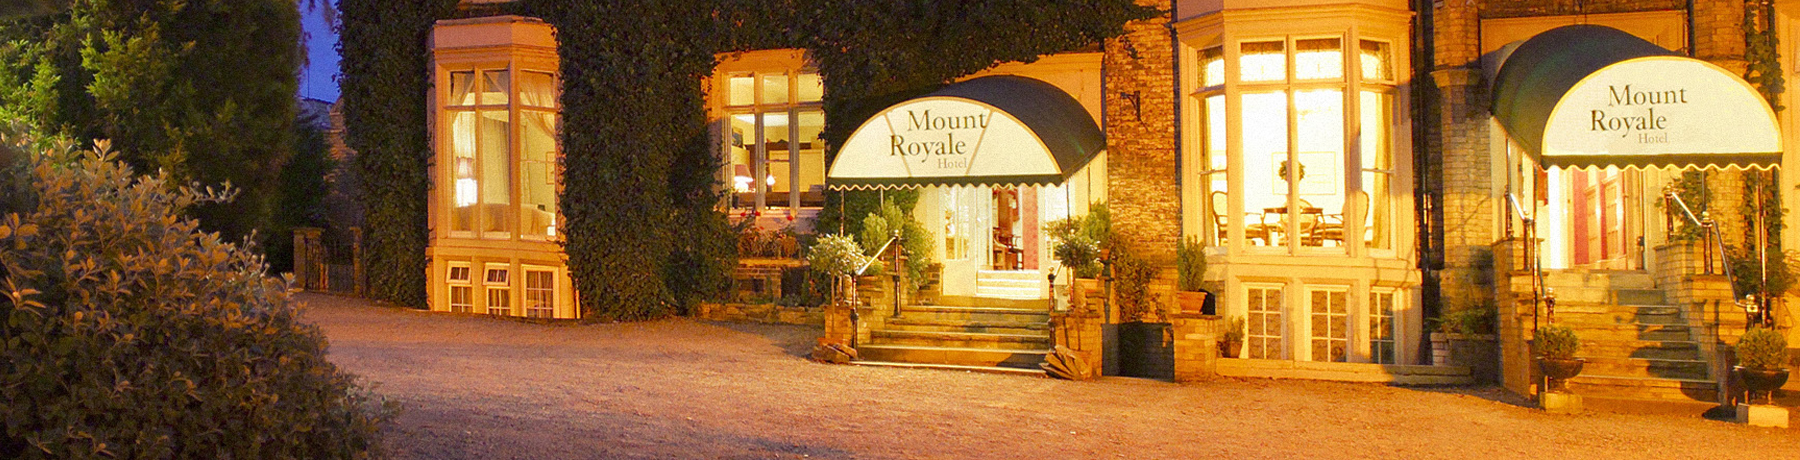 Mount Royale Hotel And Spa